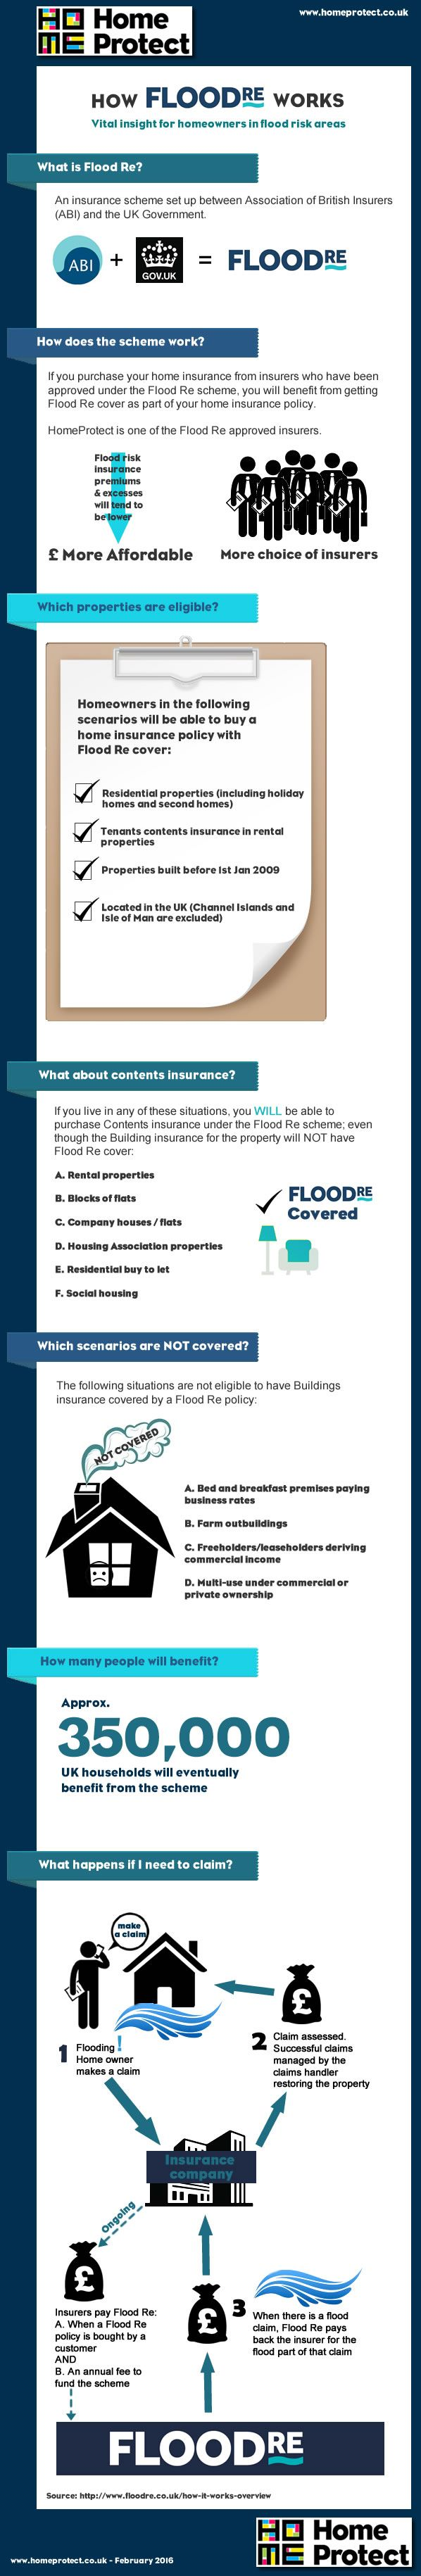 infographic how floodre works